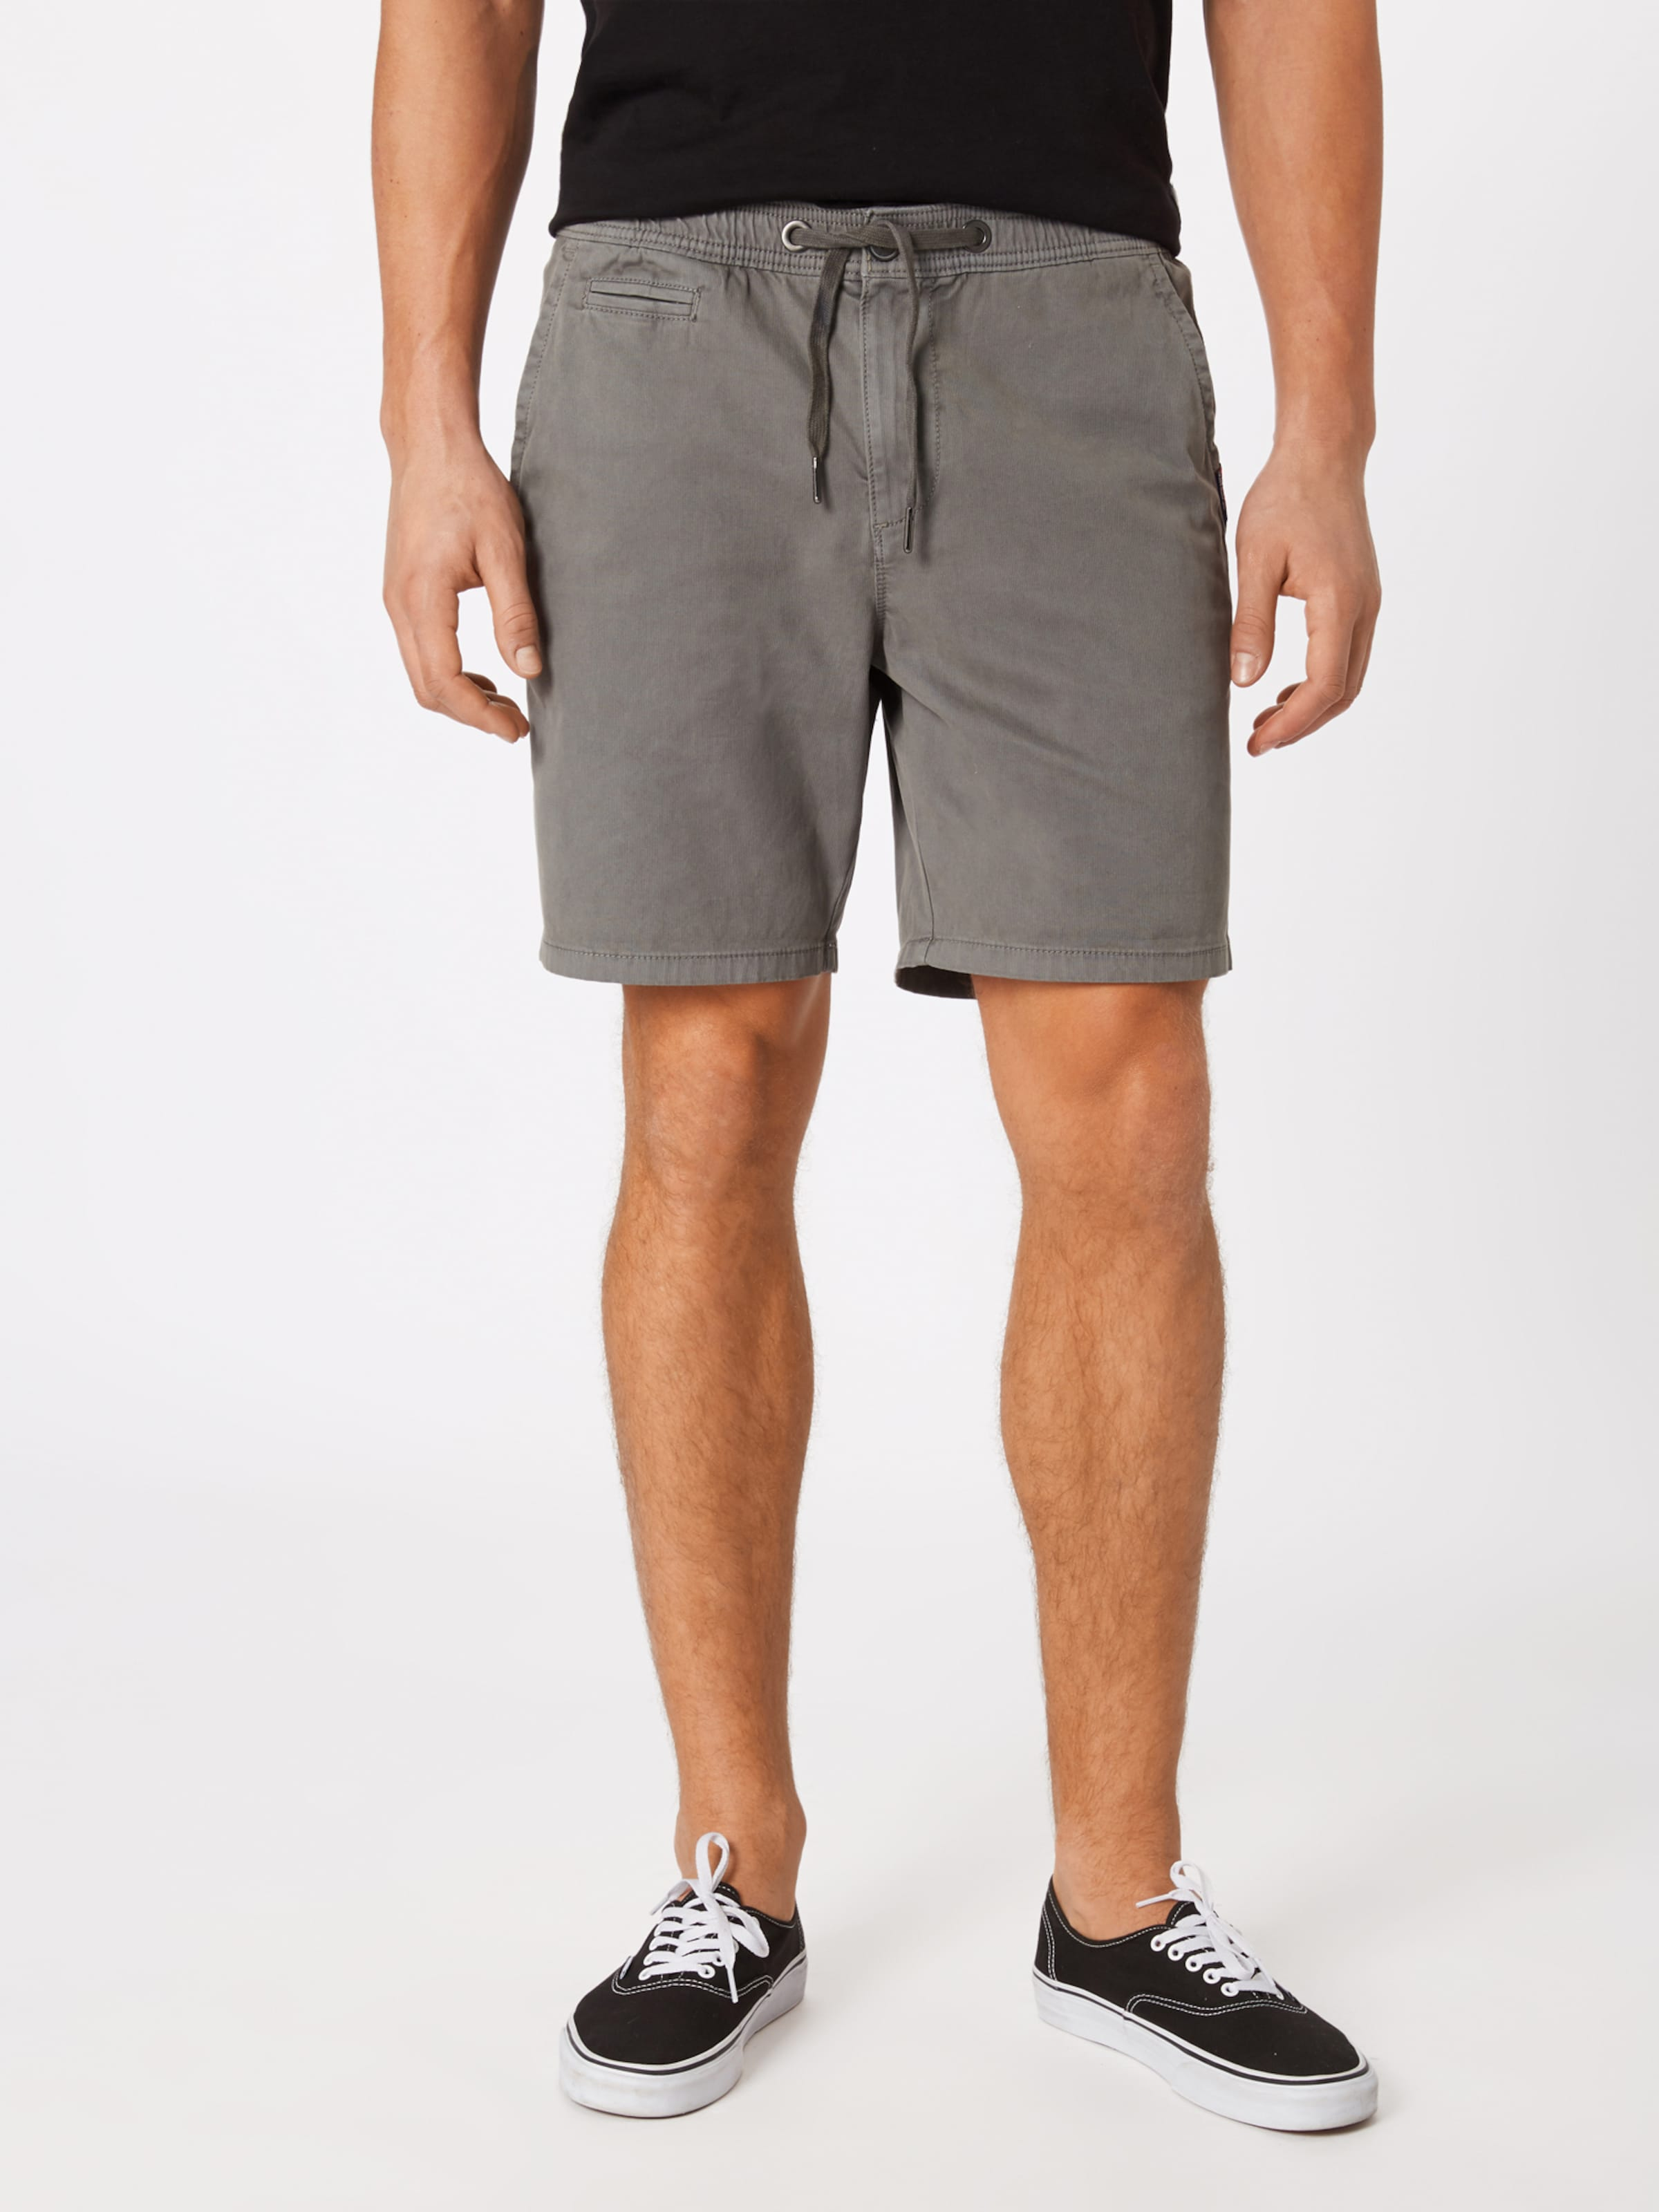 Superdry In Short' Grau Shorts 'sunscorched wmN8Onv0